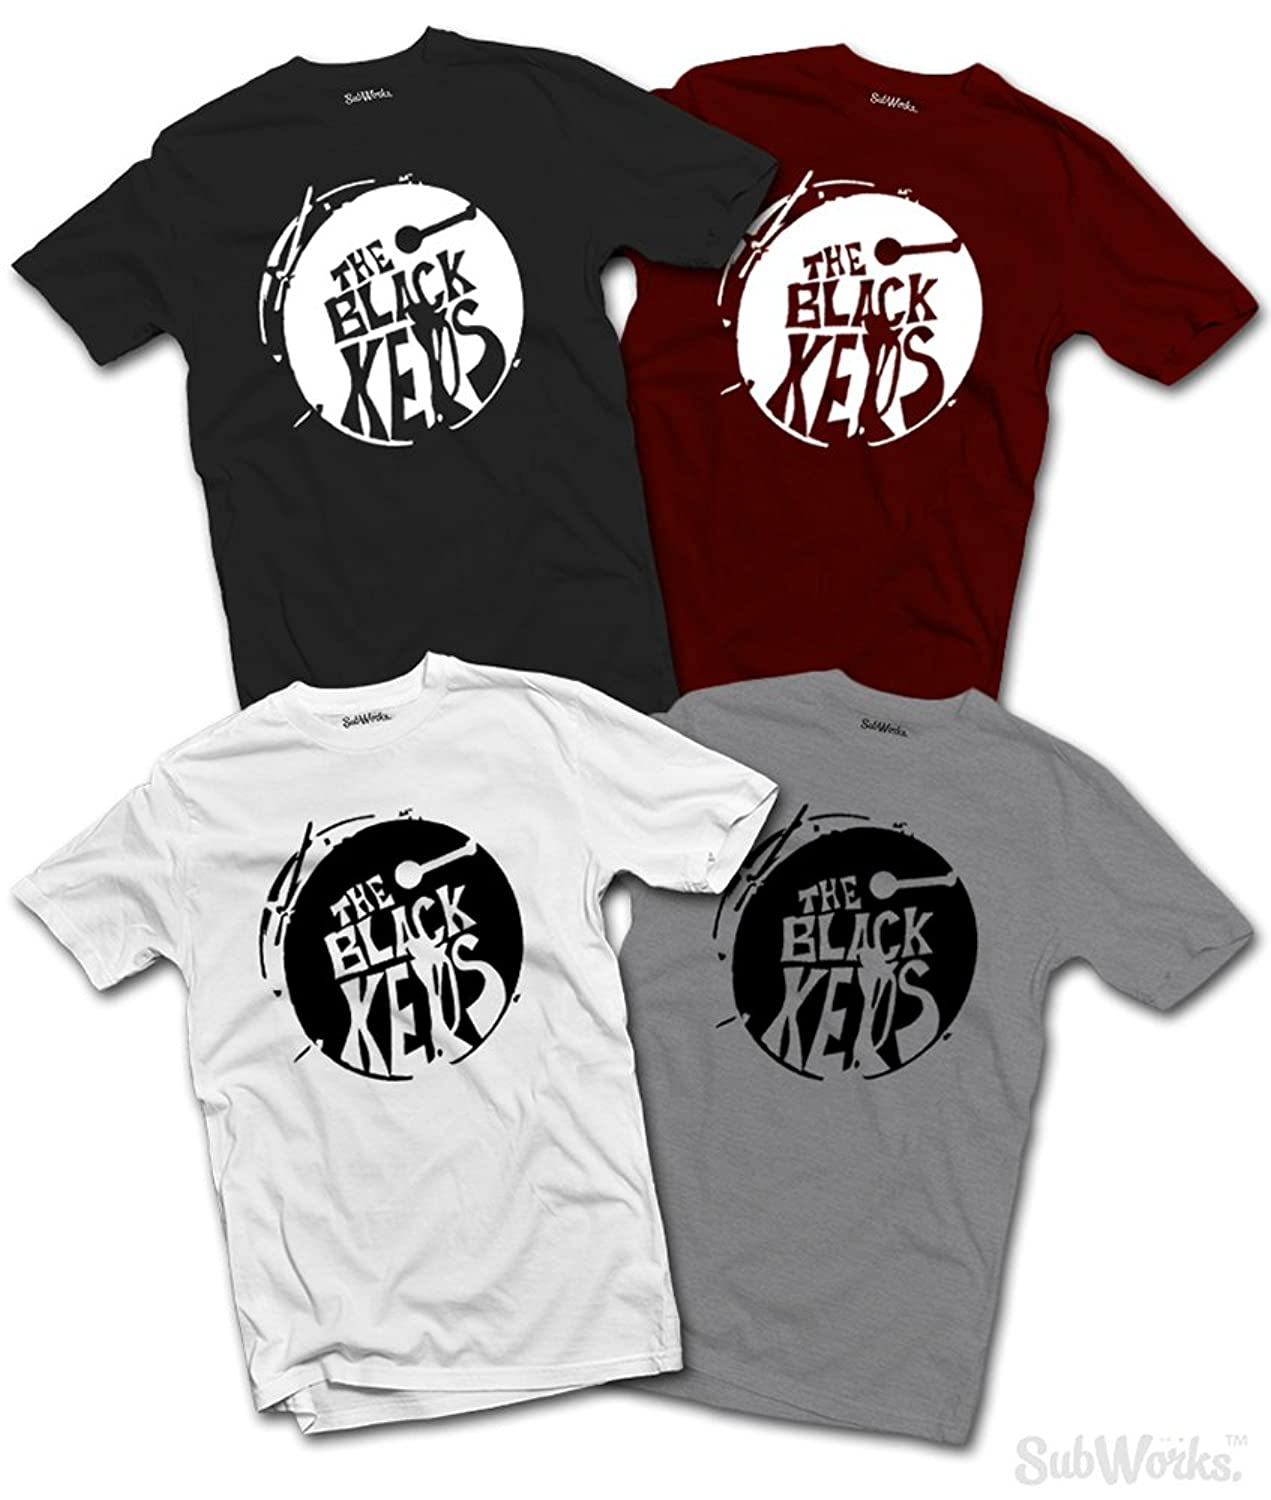 Black keys t shirt uk - The Black Keys T Shirt Turn Blue Band Music Amazon Co Uk Kitchen Home